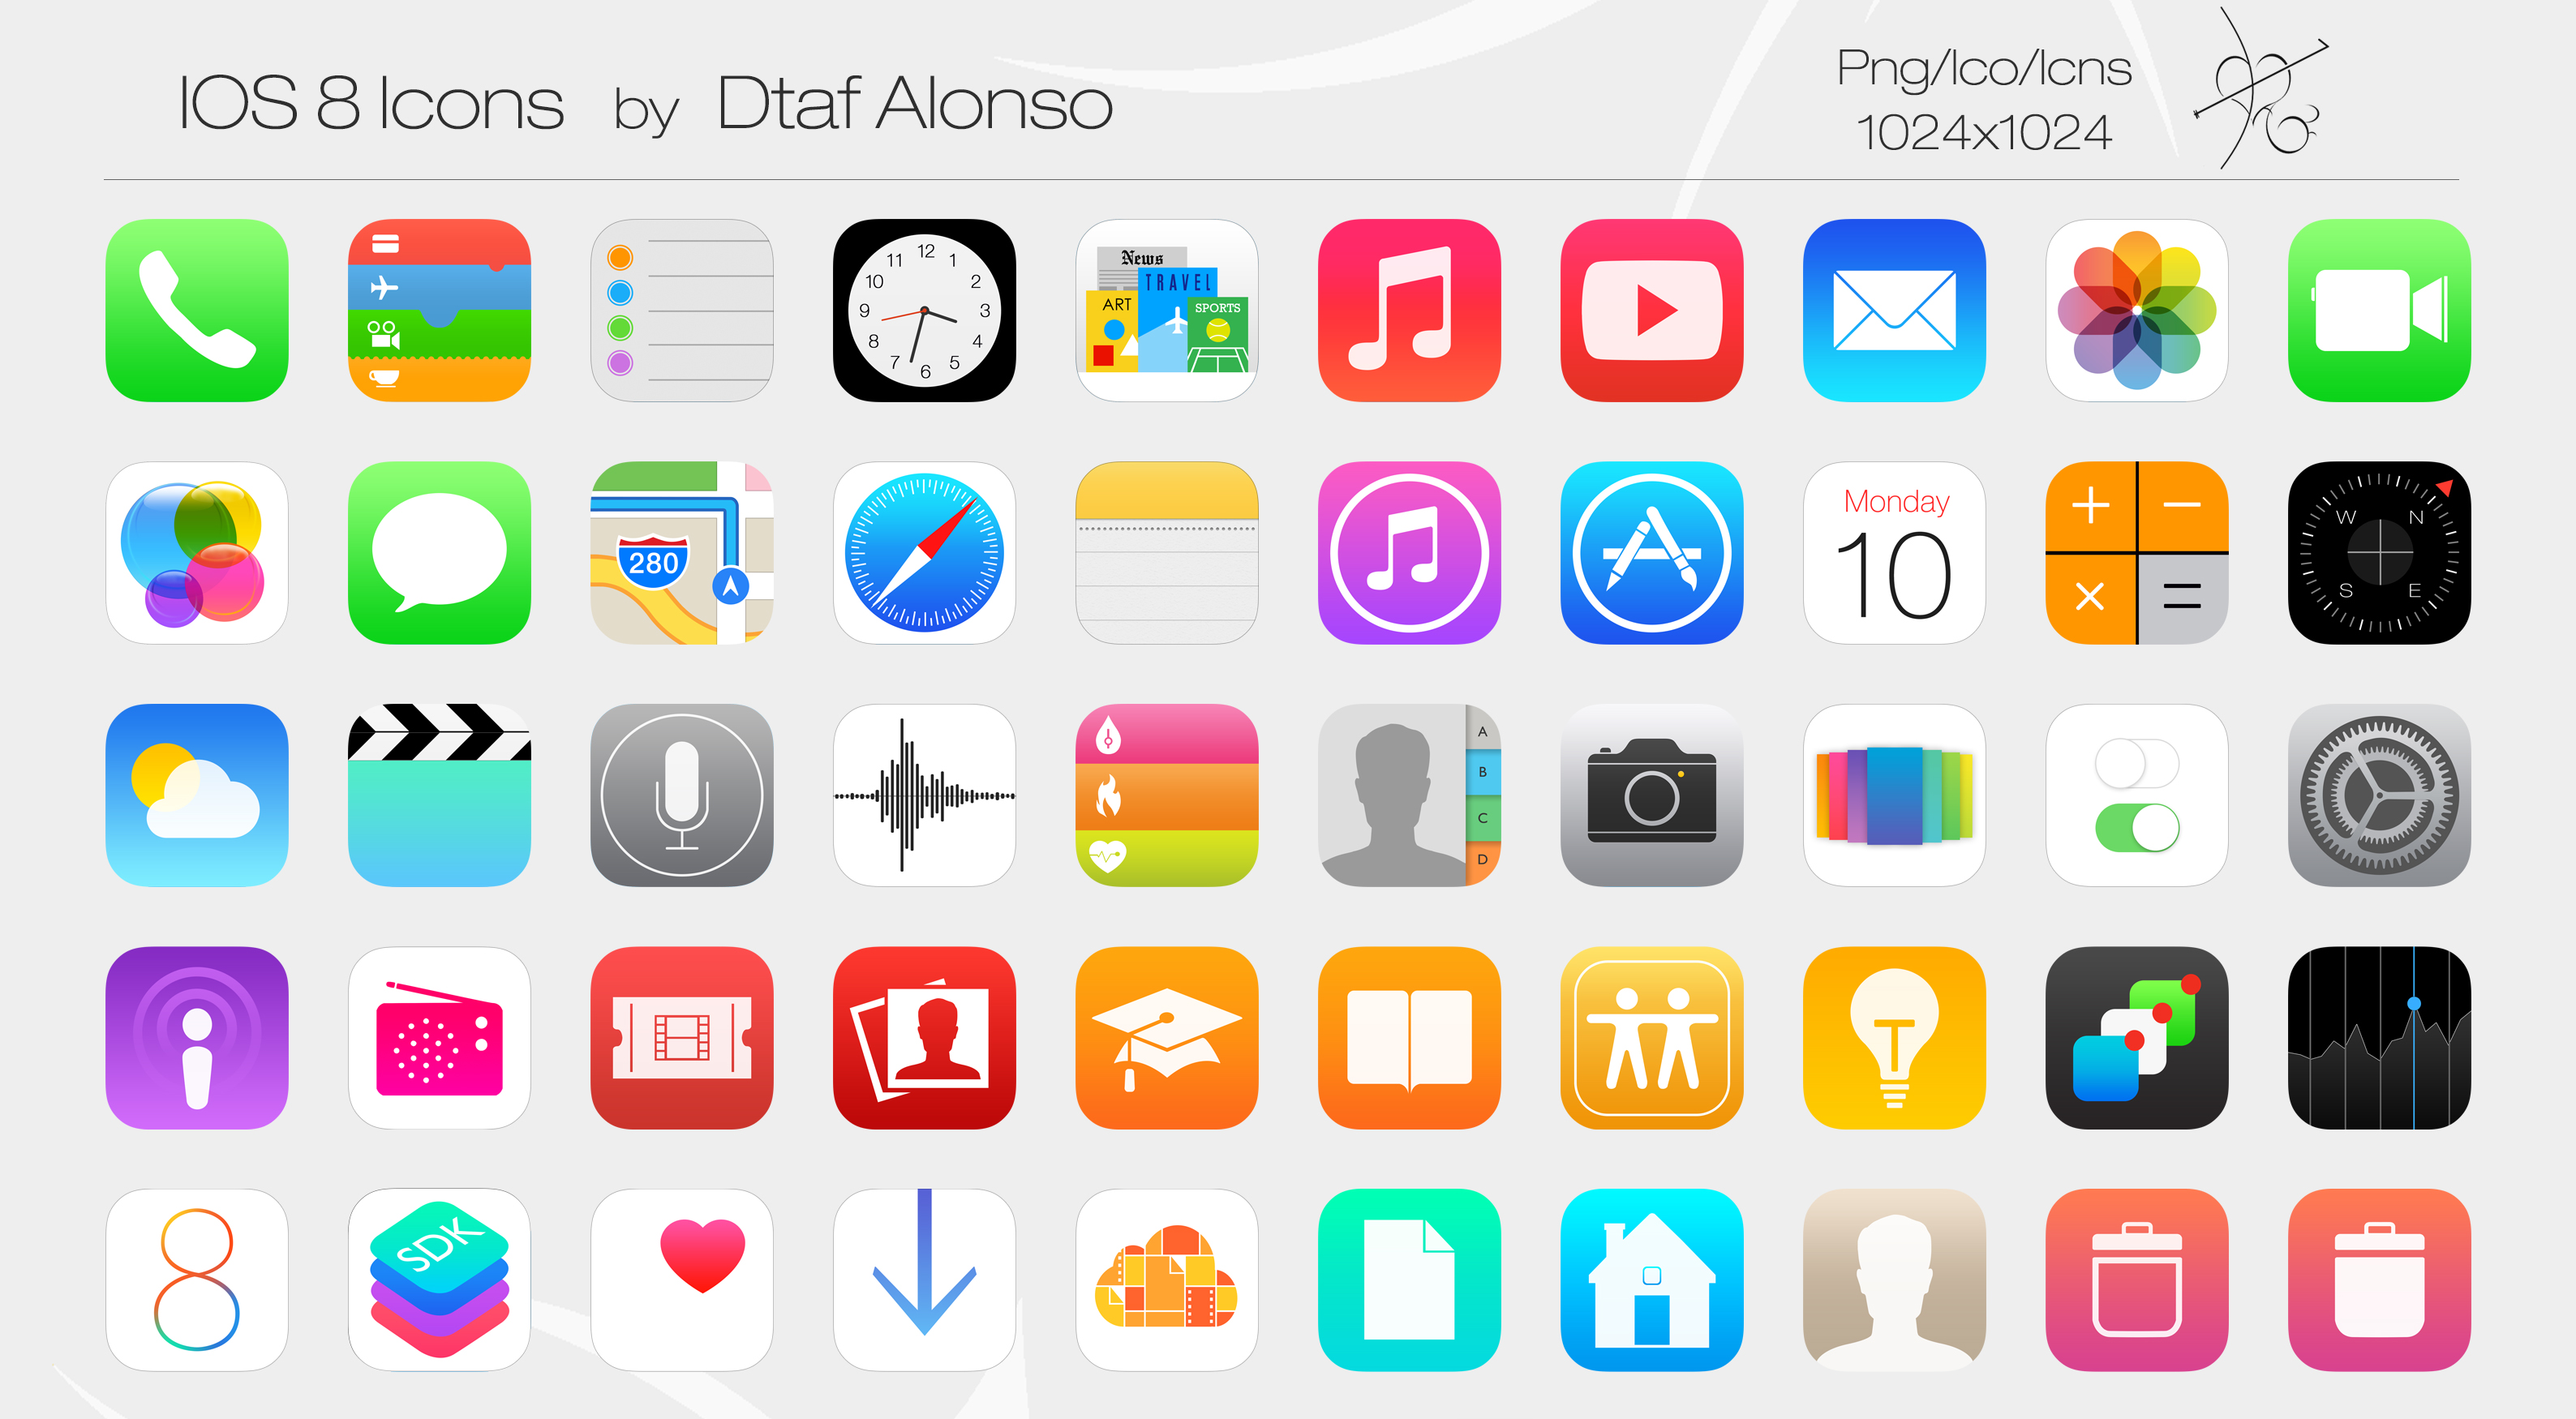 13 2015 iphone icons images apple iphone app icons for Picture apps for iphone